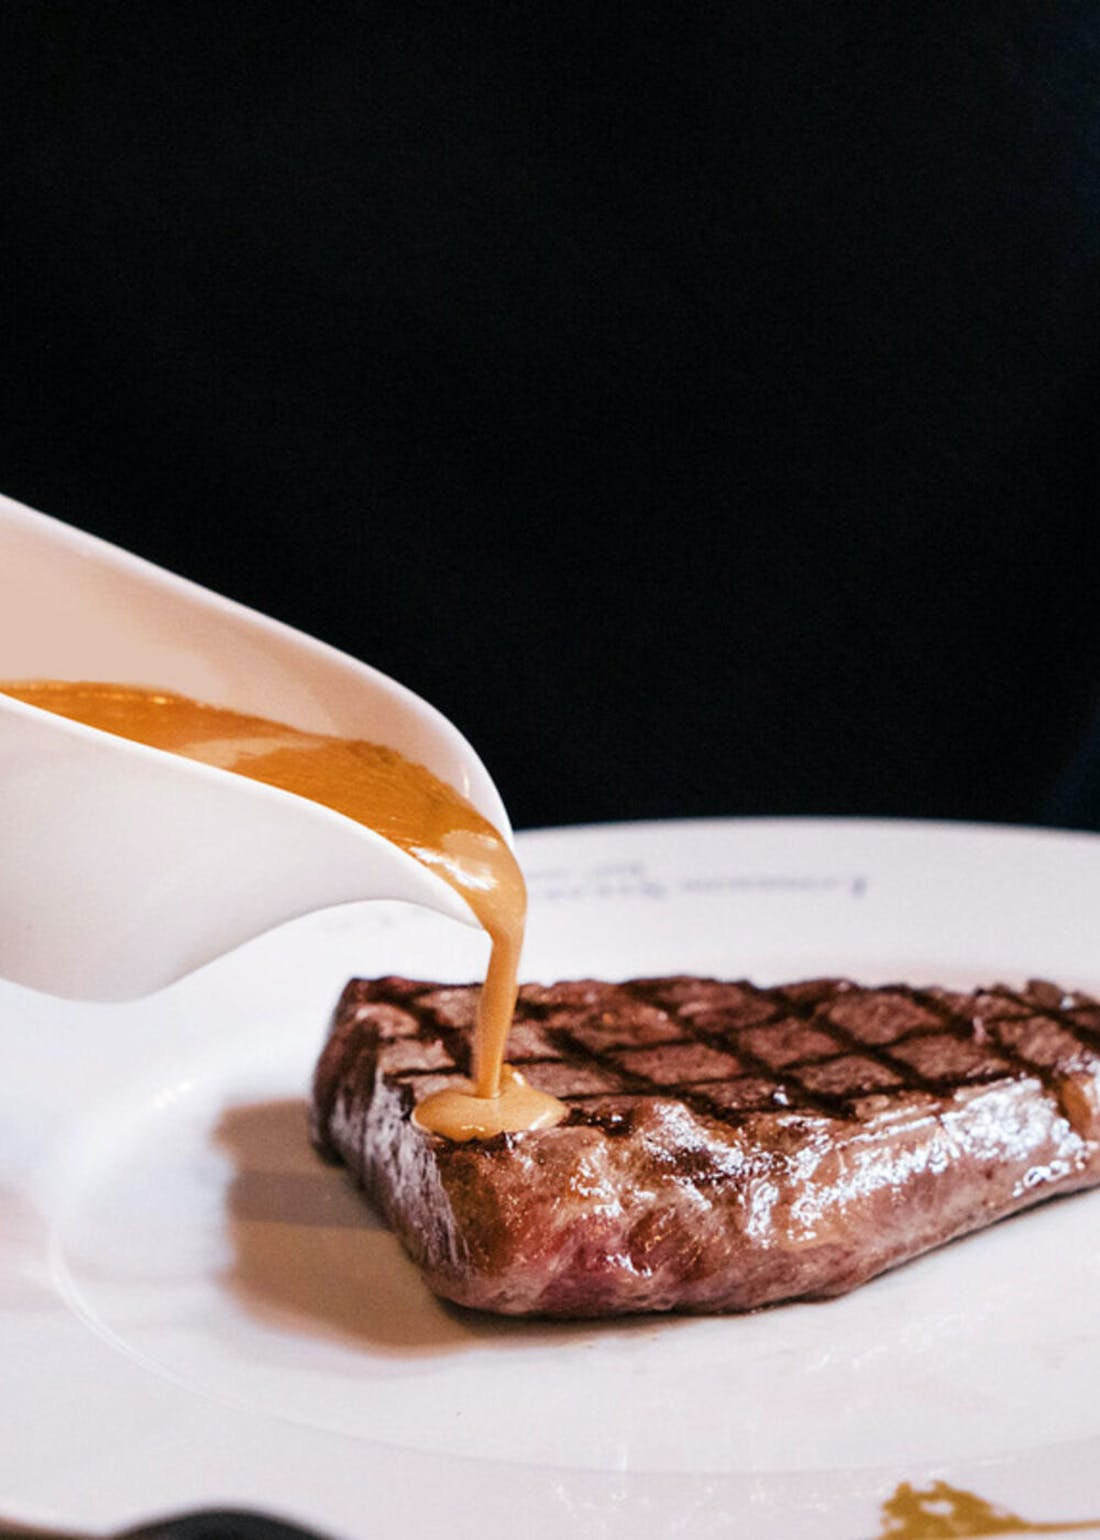 Virgin Experience Days 3 Course Meal for 2 at Marco Pierre White Restaurant